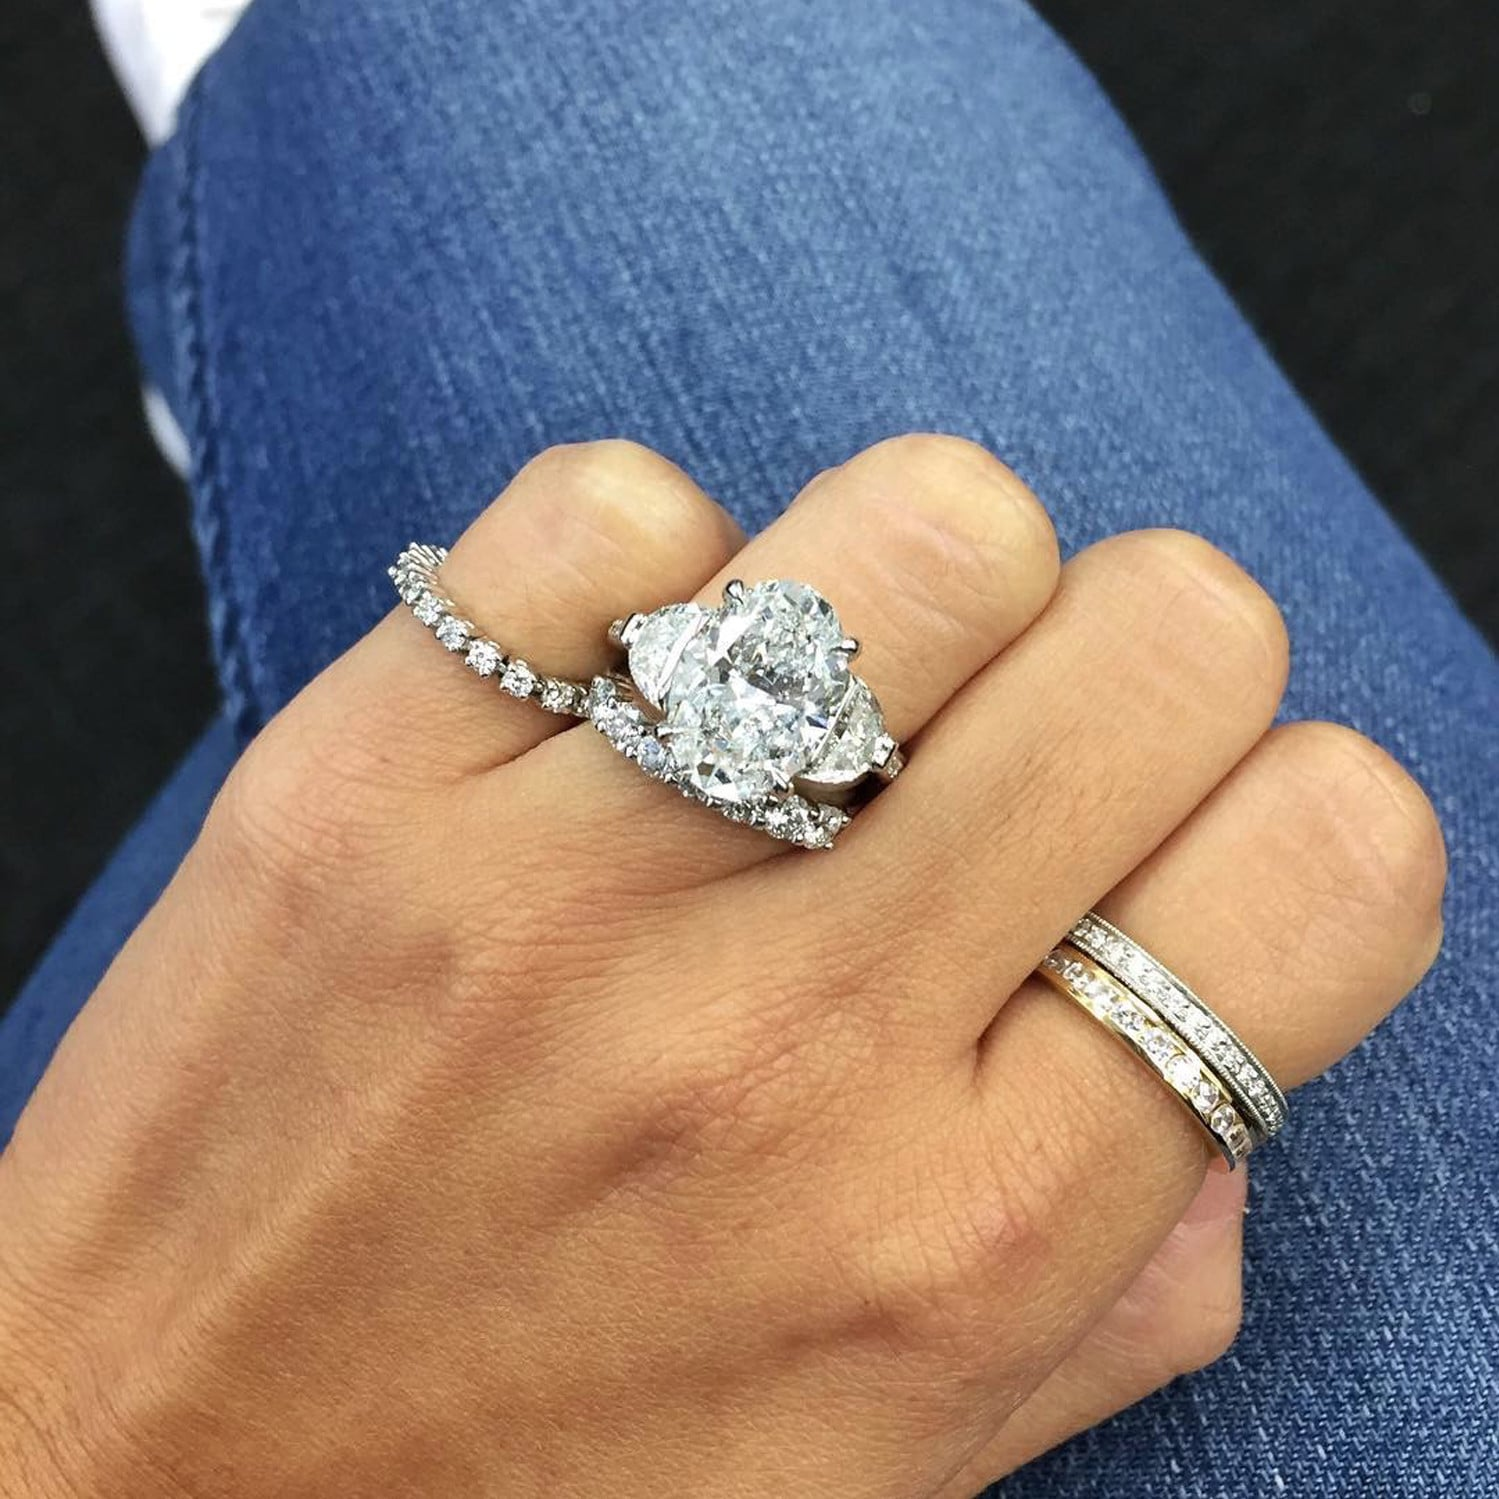 big engagement ring inspiration popsugar love sex 1499x1499 jpeg